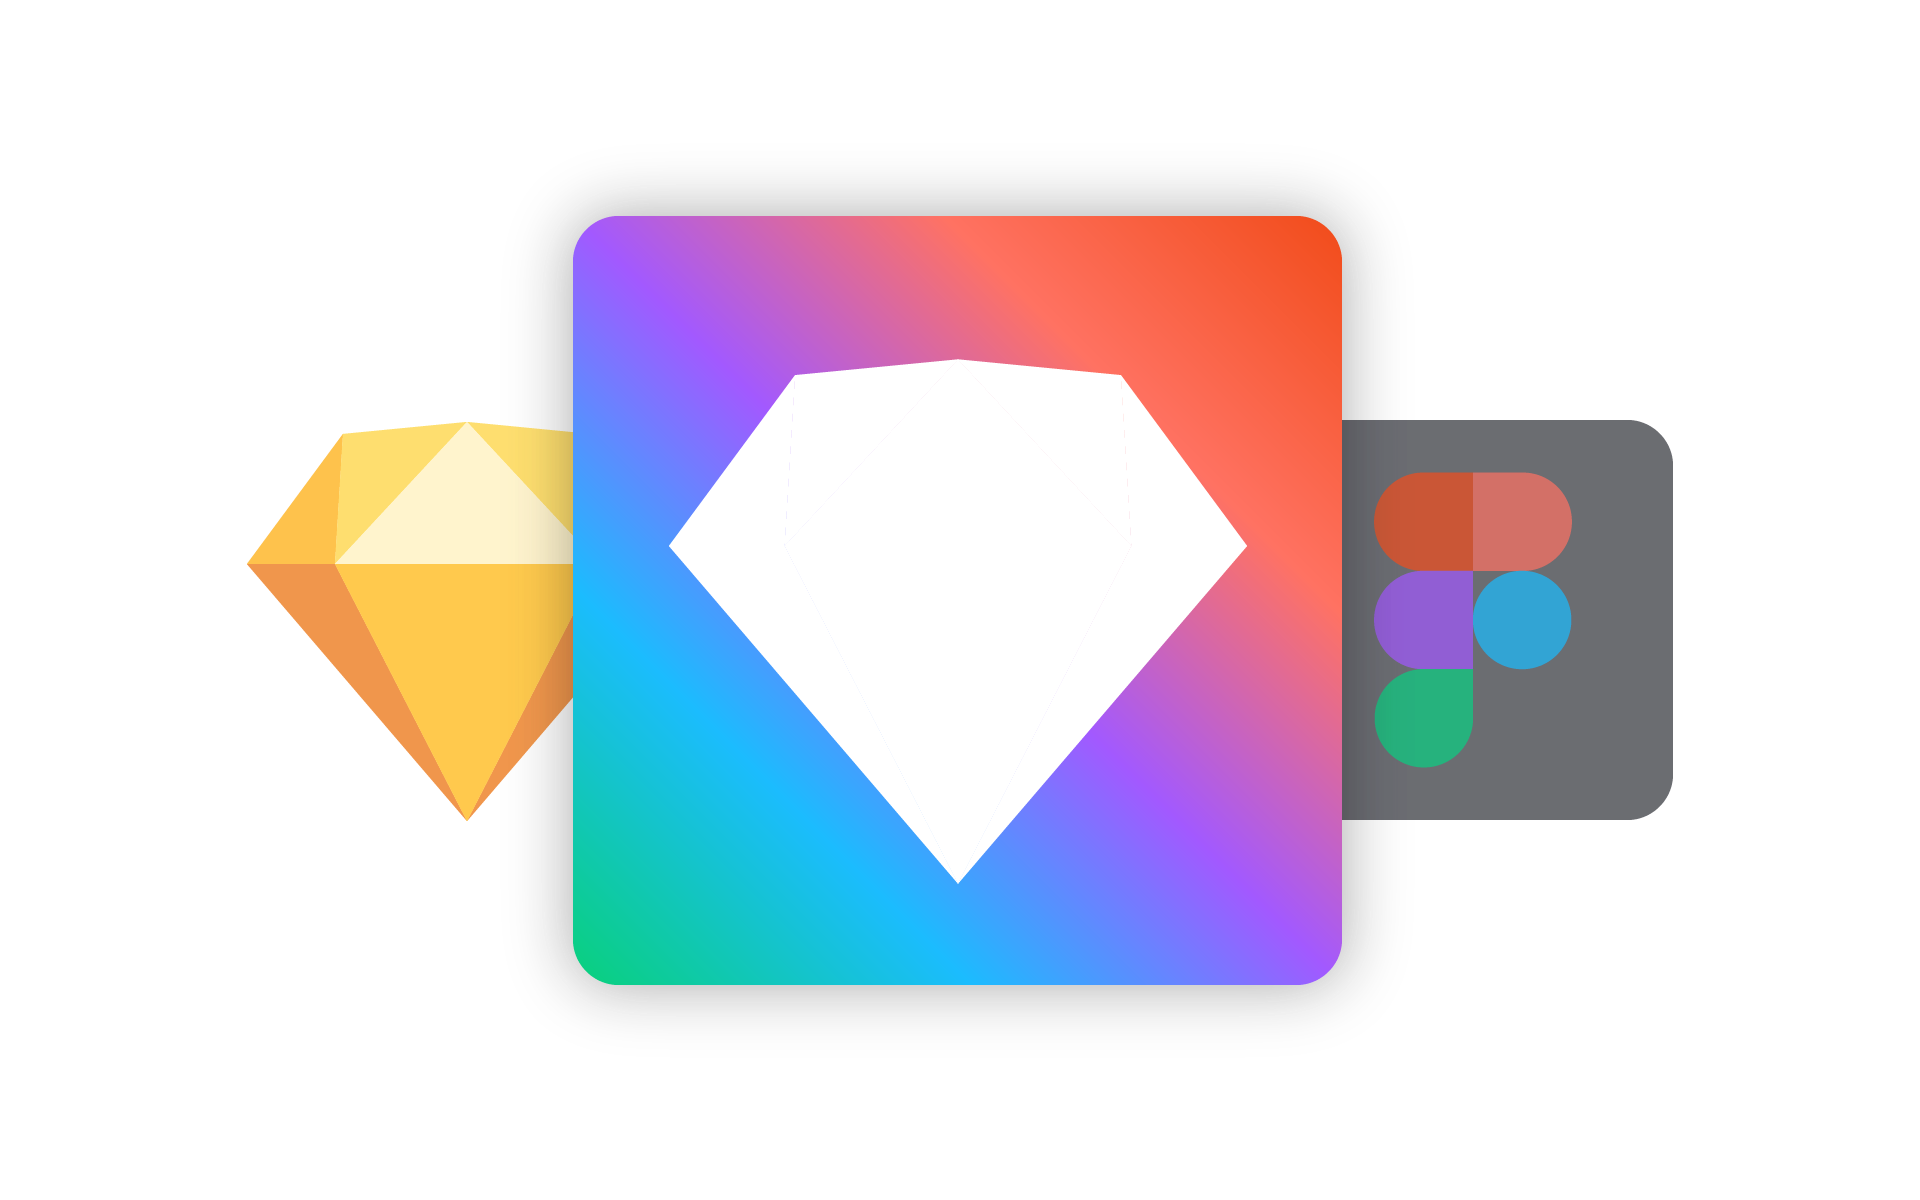 Why Sketch Will Buy Figma A Couple Of Weeks Ago A News Hit The By Chaker Bejaoui Prototypr